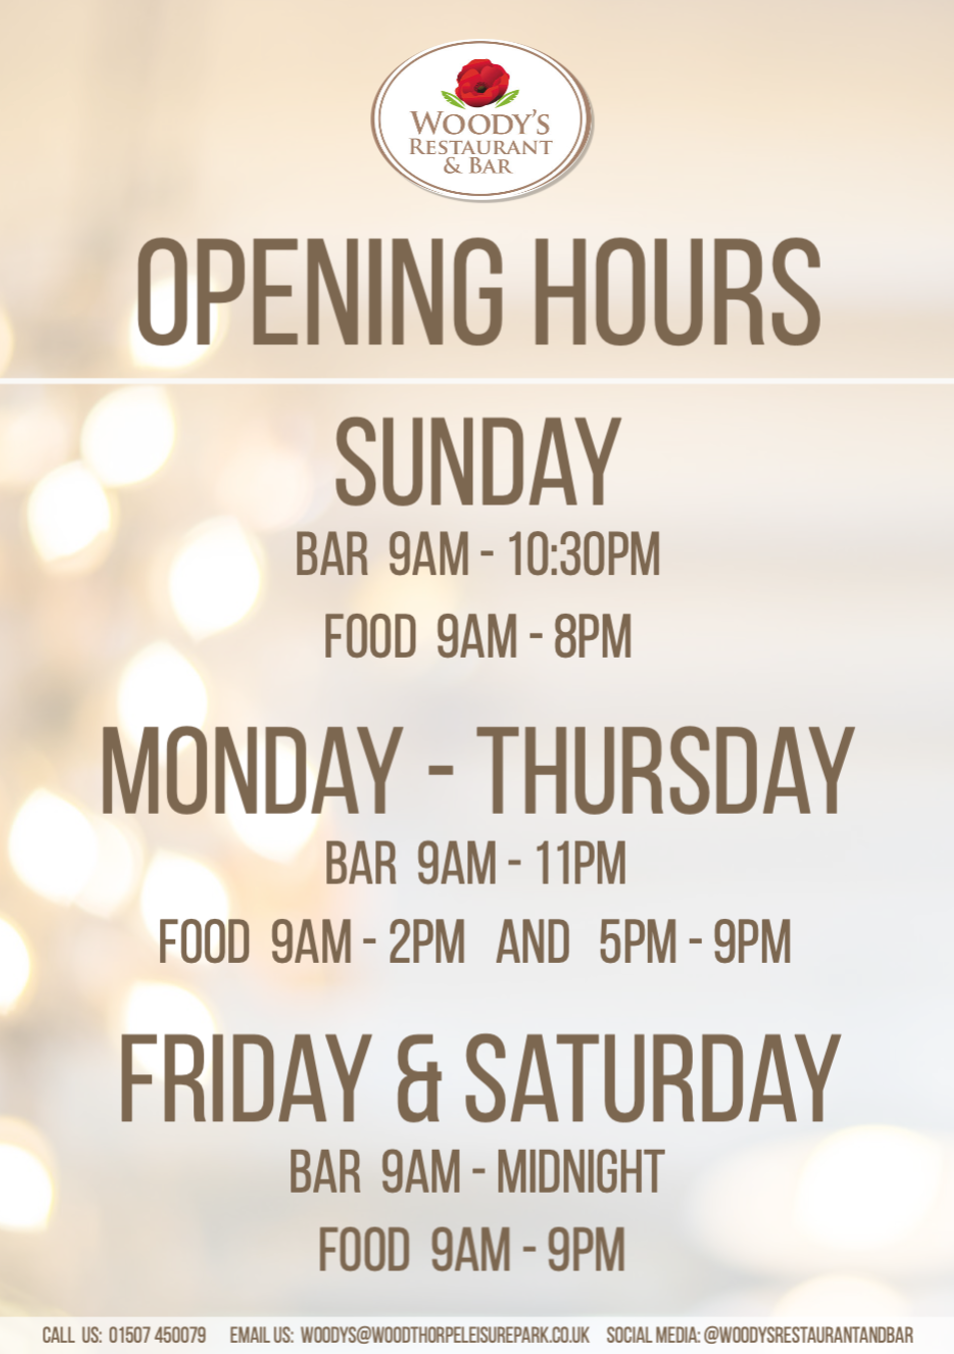 Woodys Restaurant and Bar opening times